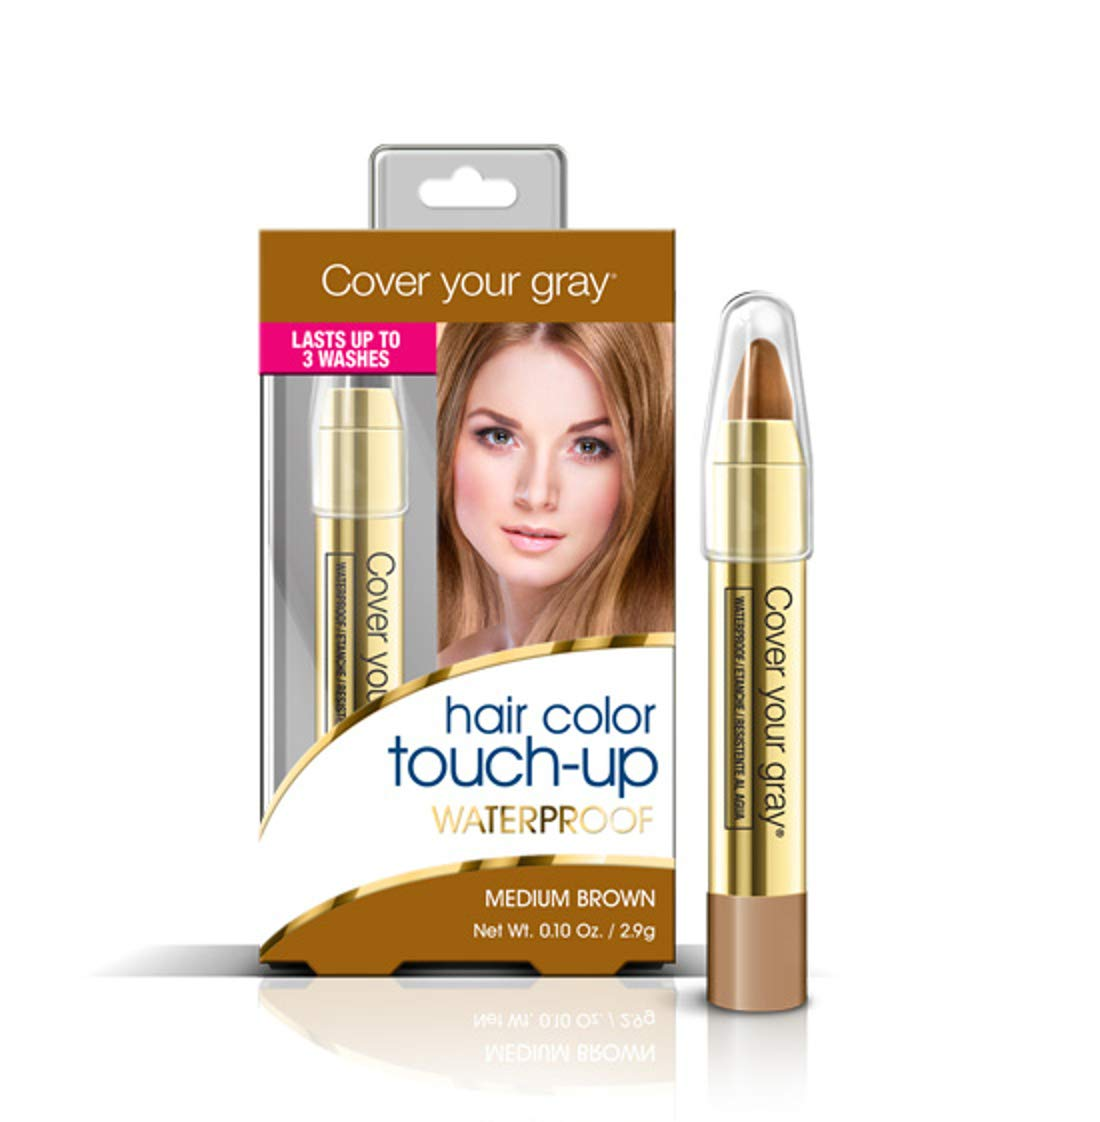 Cover Your Gray Hair Color Touch-Up Waterproof Medium Brown 0222IG